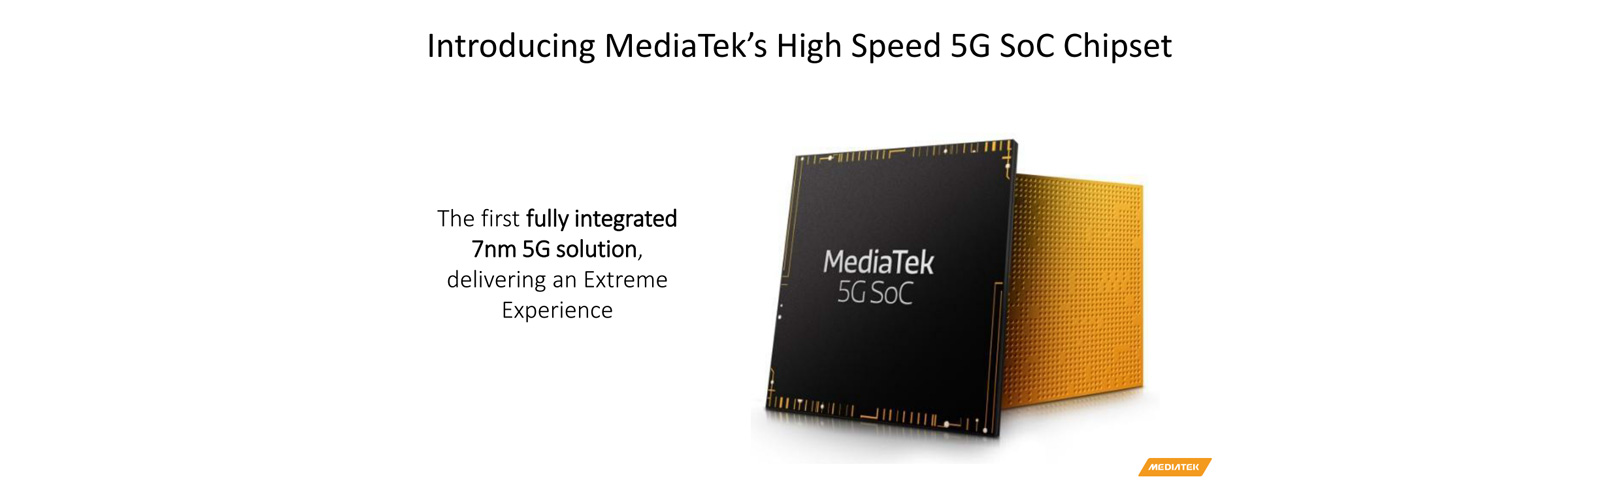 MediaTek 5G SoC unveiled at Computex 2019